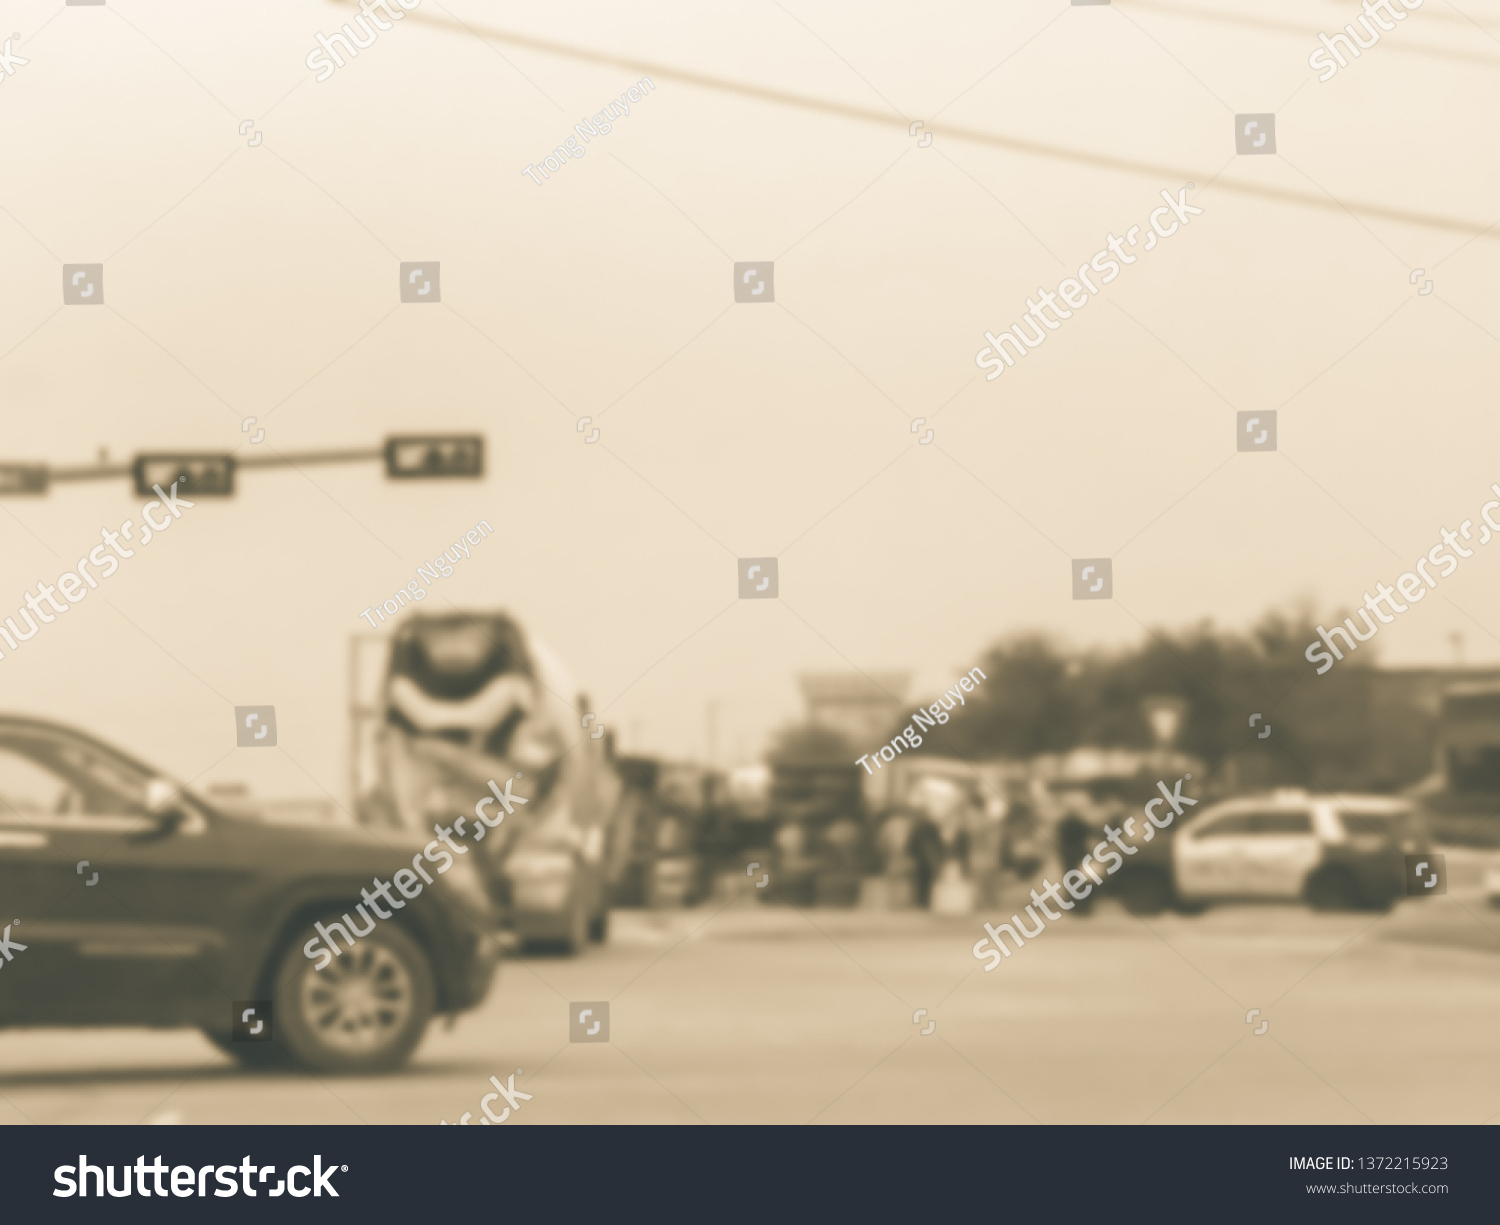 Blurred Abstract Dramatic Car Accident Street Stock Photo